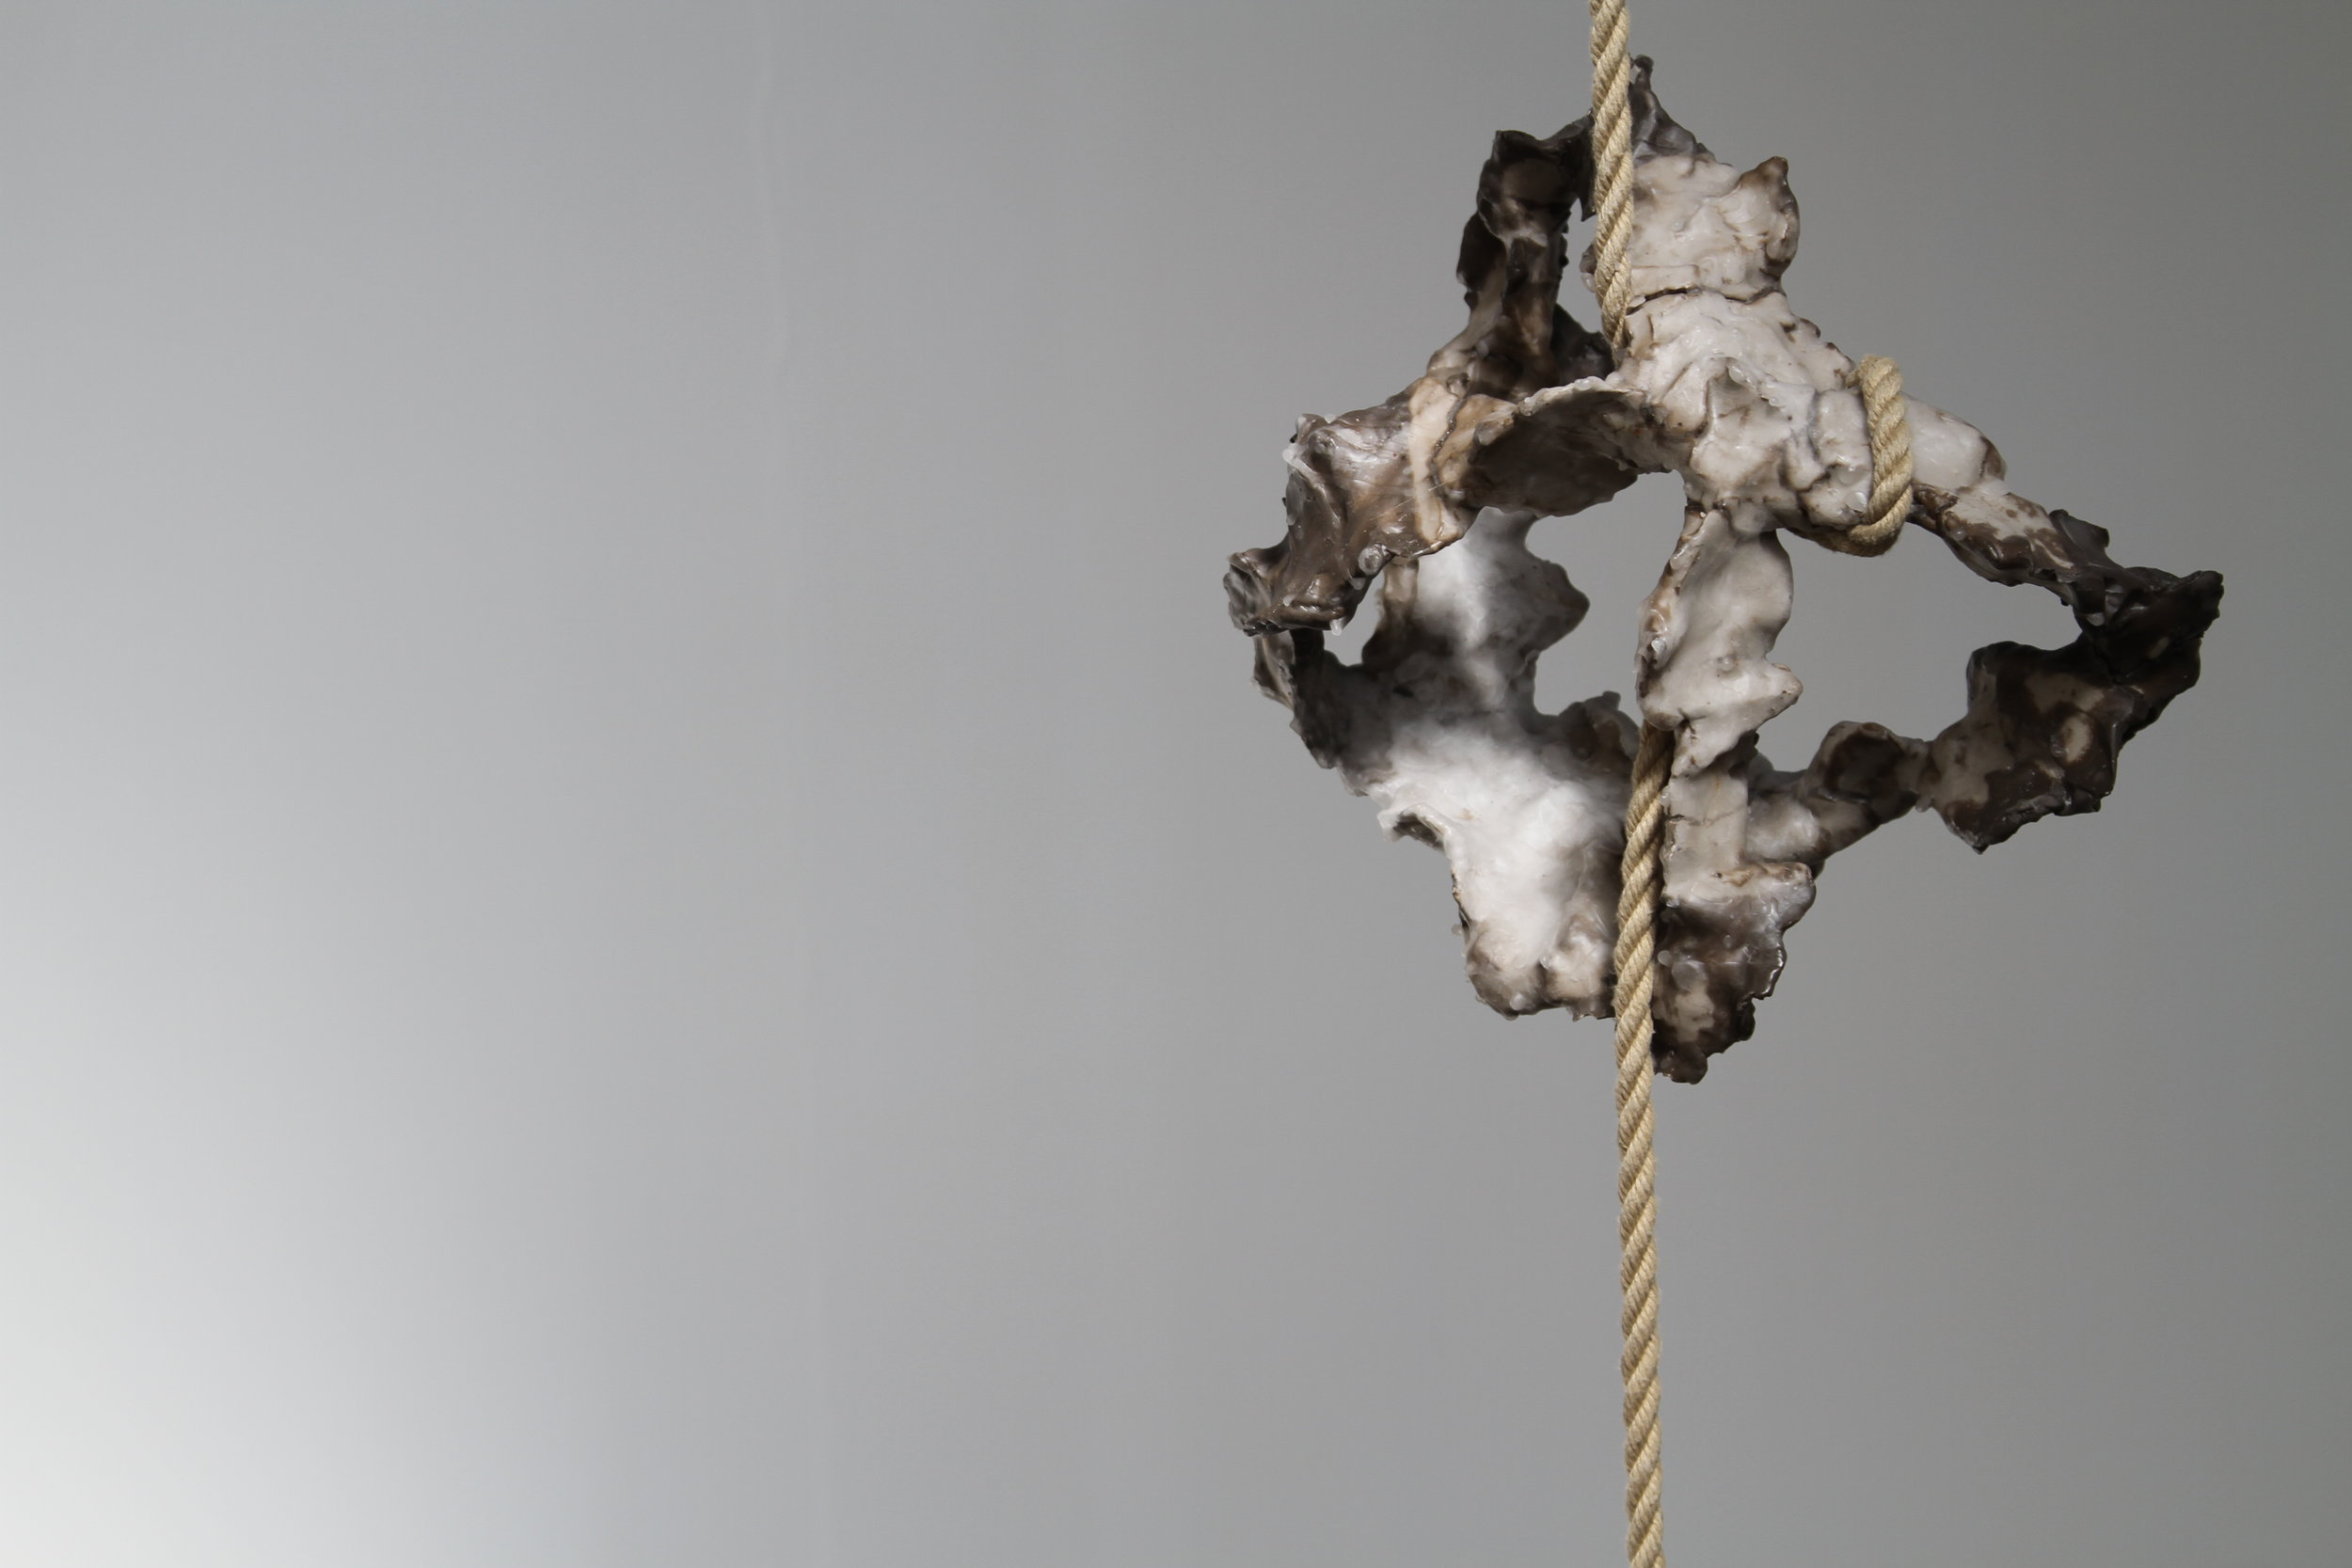 Javier Torras,  BalancedTension,  2016, 490x300x15cm.Iron,steel,clay,wax and rope.